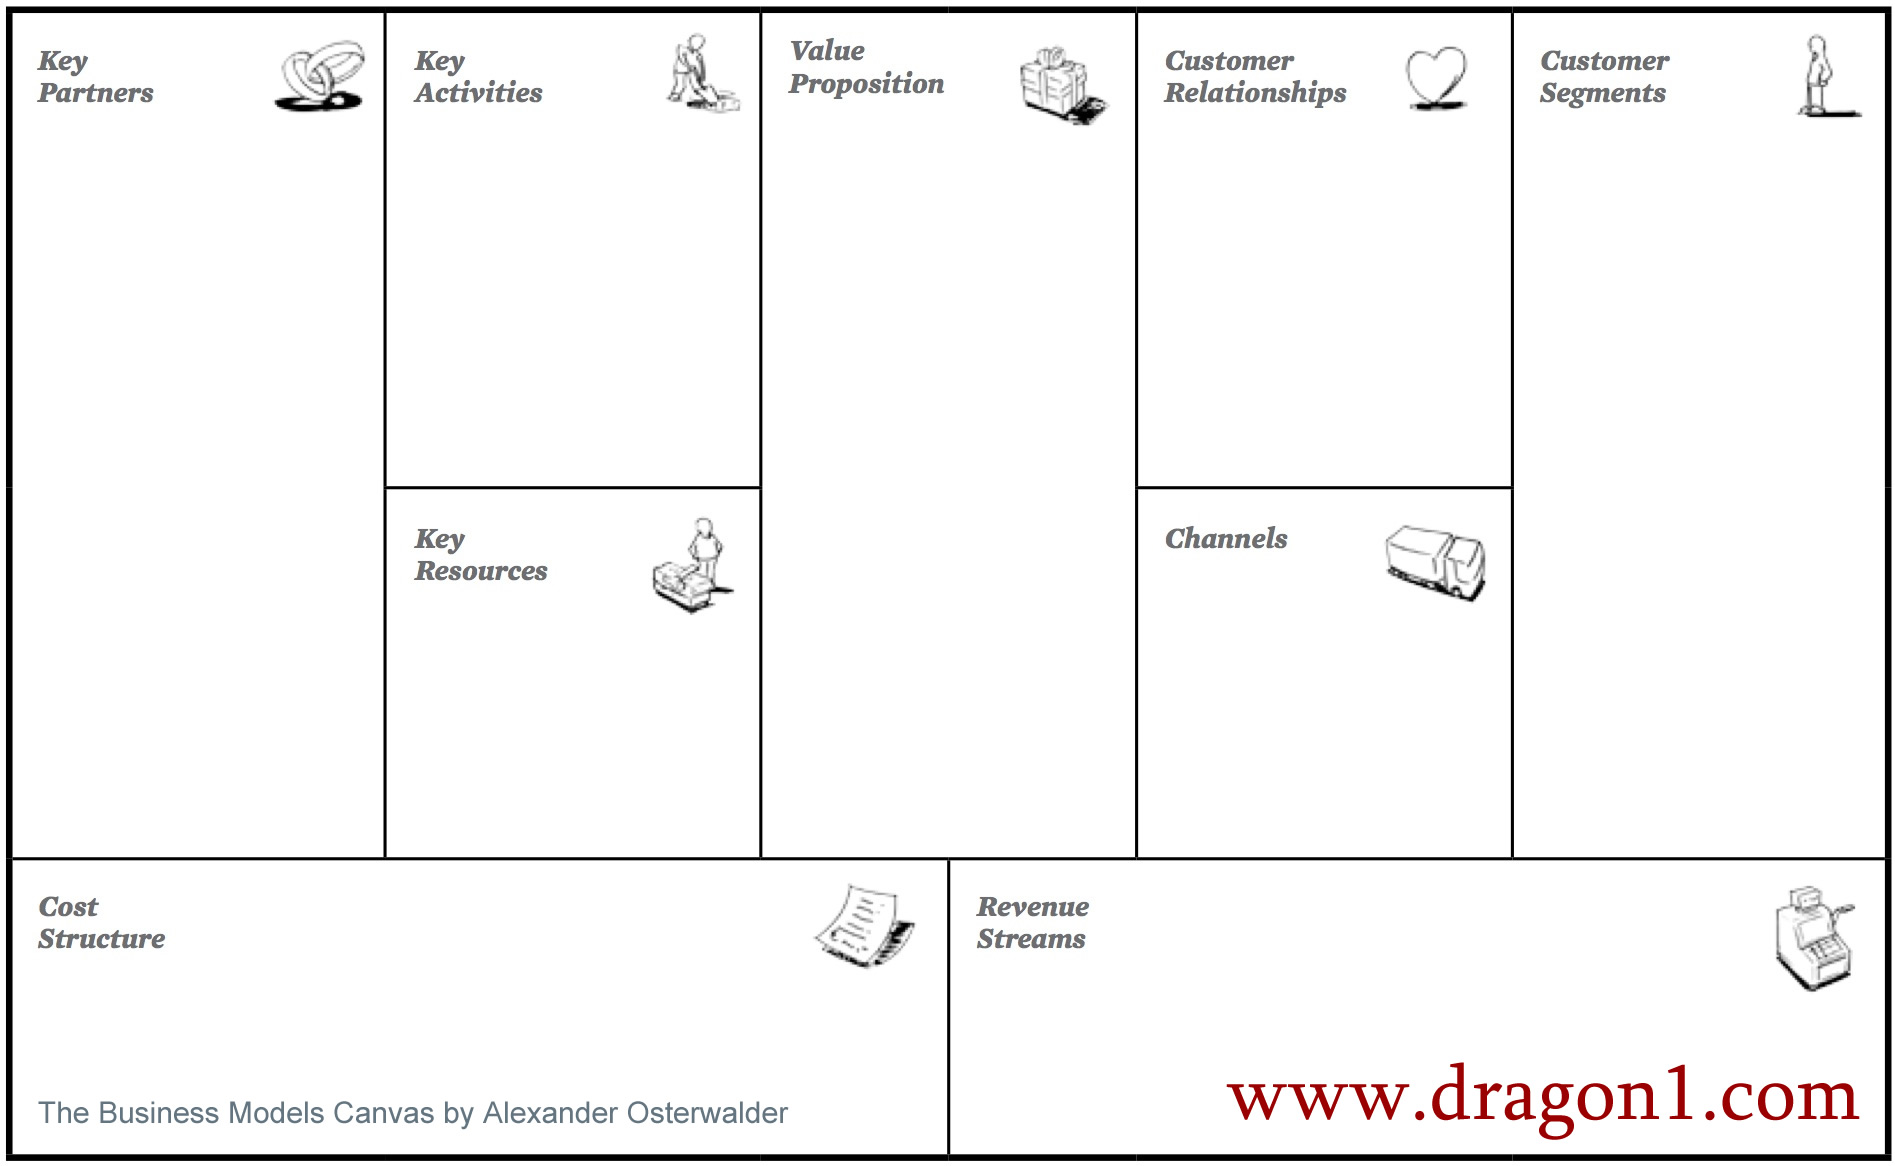 Business model canvas template dragon1 business model canvas template cheaphphosting Choice Image